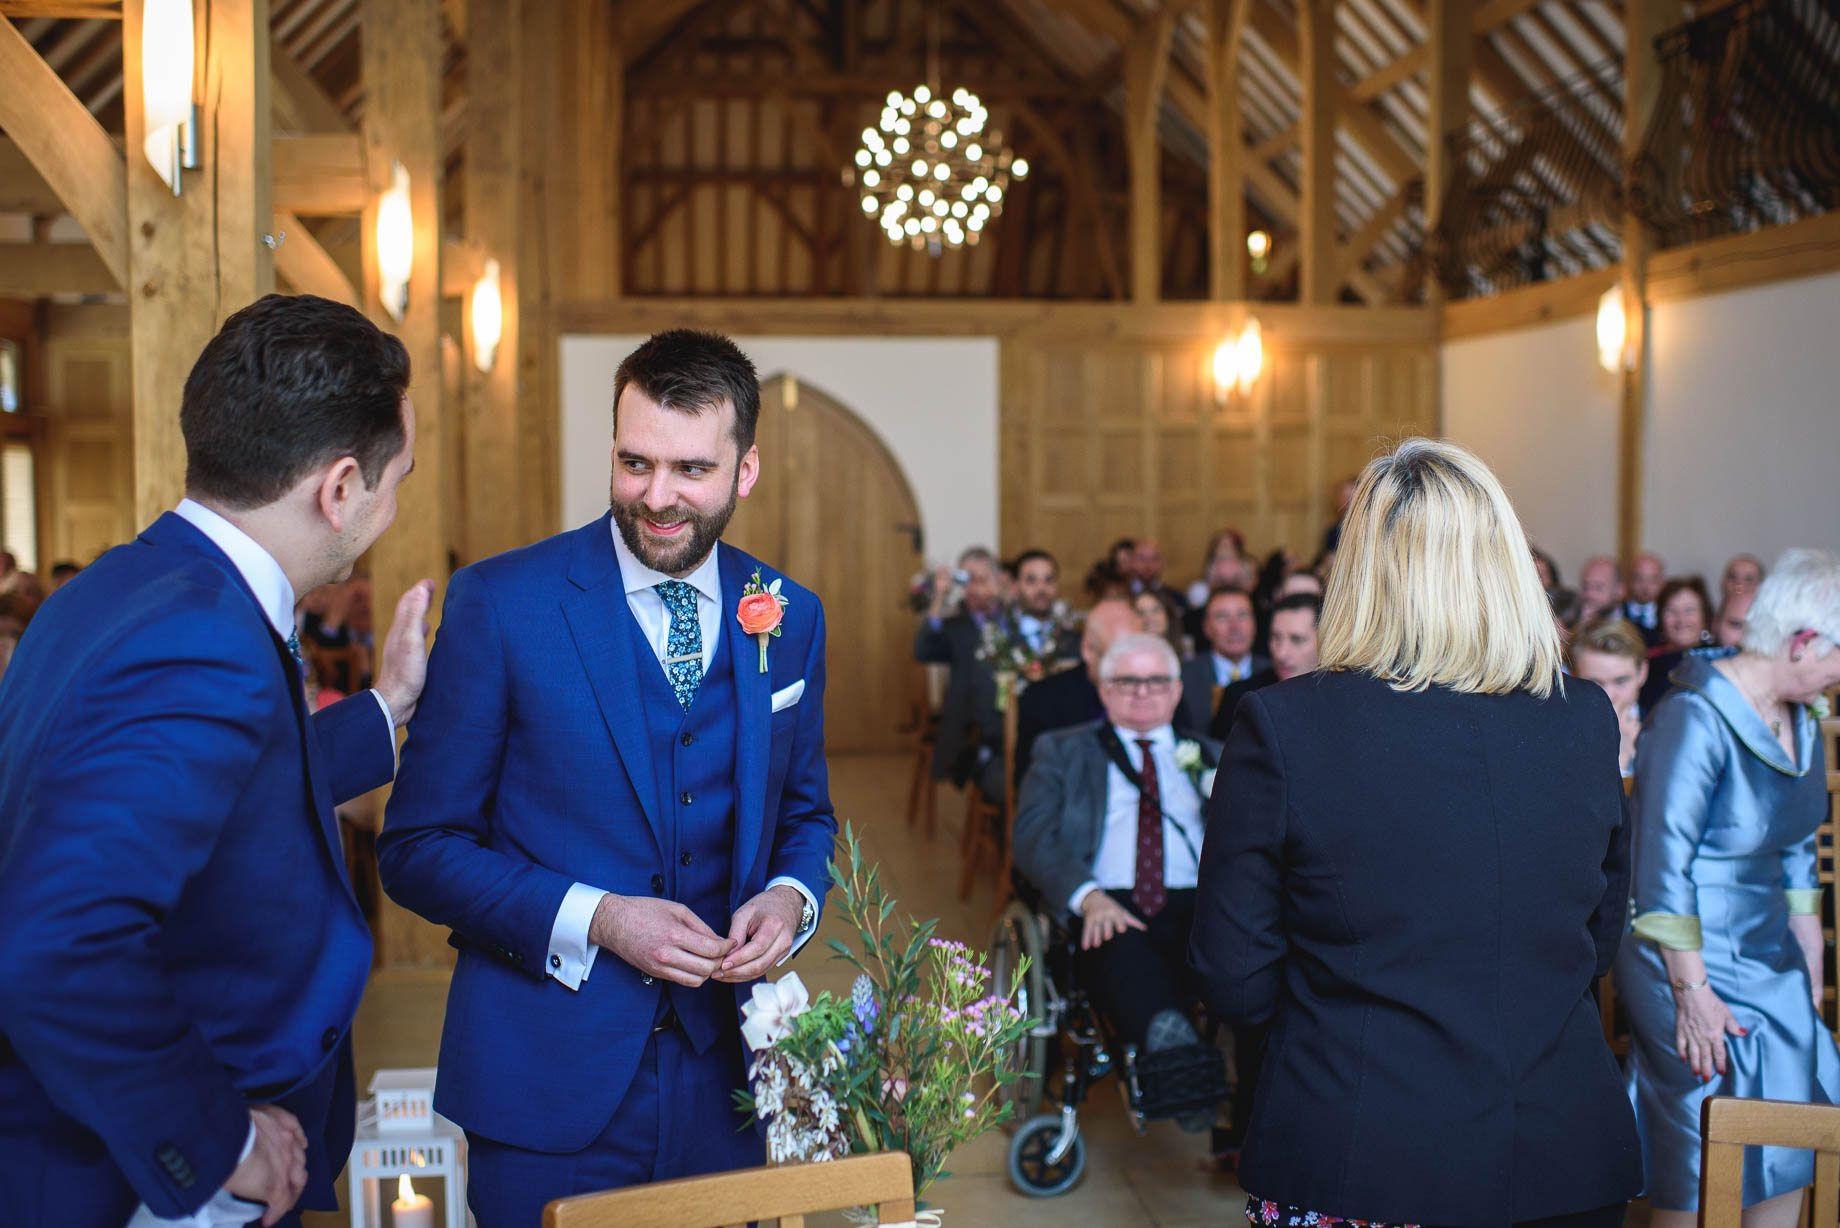 Rivervale Barn wedding photography by Guy Collier - Claire and Simon (52 of 133)